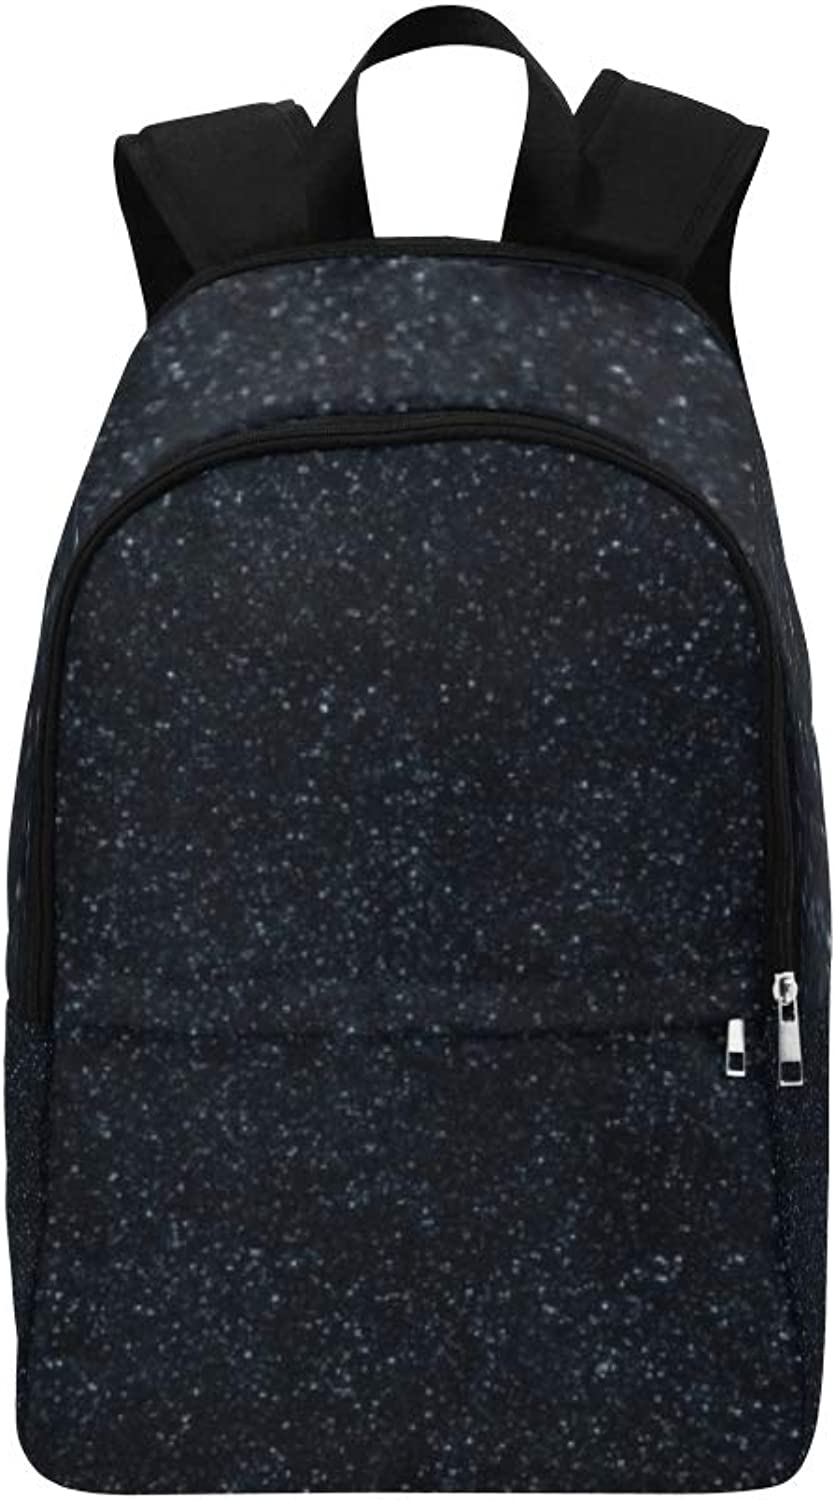 Black Glitter Texture Christmas Abstract Casual Daypack Travel Bag College School Backpack for Mens and Women